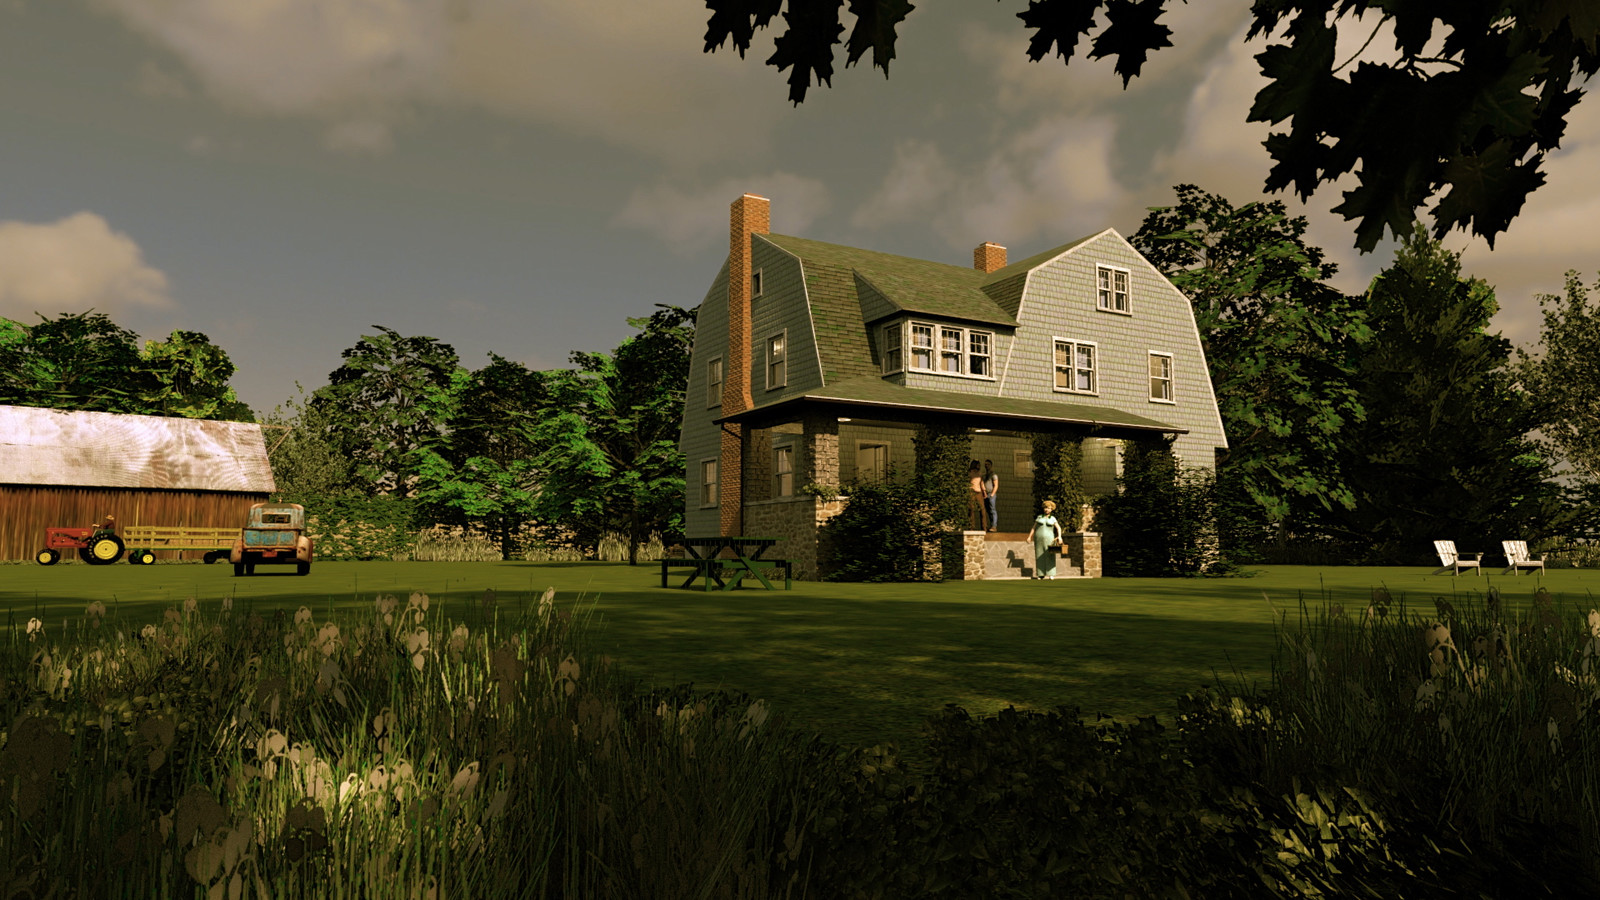 """""""Mason Farm - Sweet Summer Breeze"""" Summer Sun Collection   20 Masonfarm HD1080 22 - iP Kodac  """"SketchUp to LayOut"""" The Mason Farm Renders for the launching of the new book """"SketchUp to LayOut"""" http://bit.ly/2j0d0Wh by MasterSketchup."""